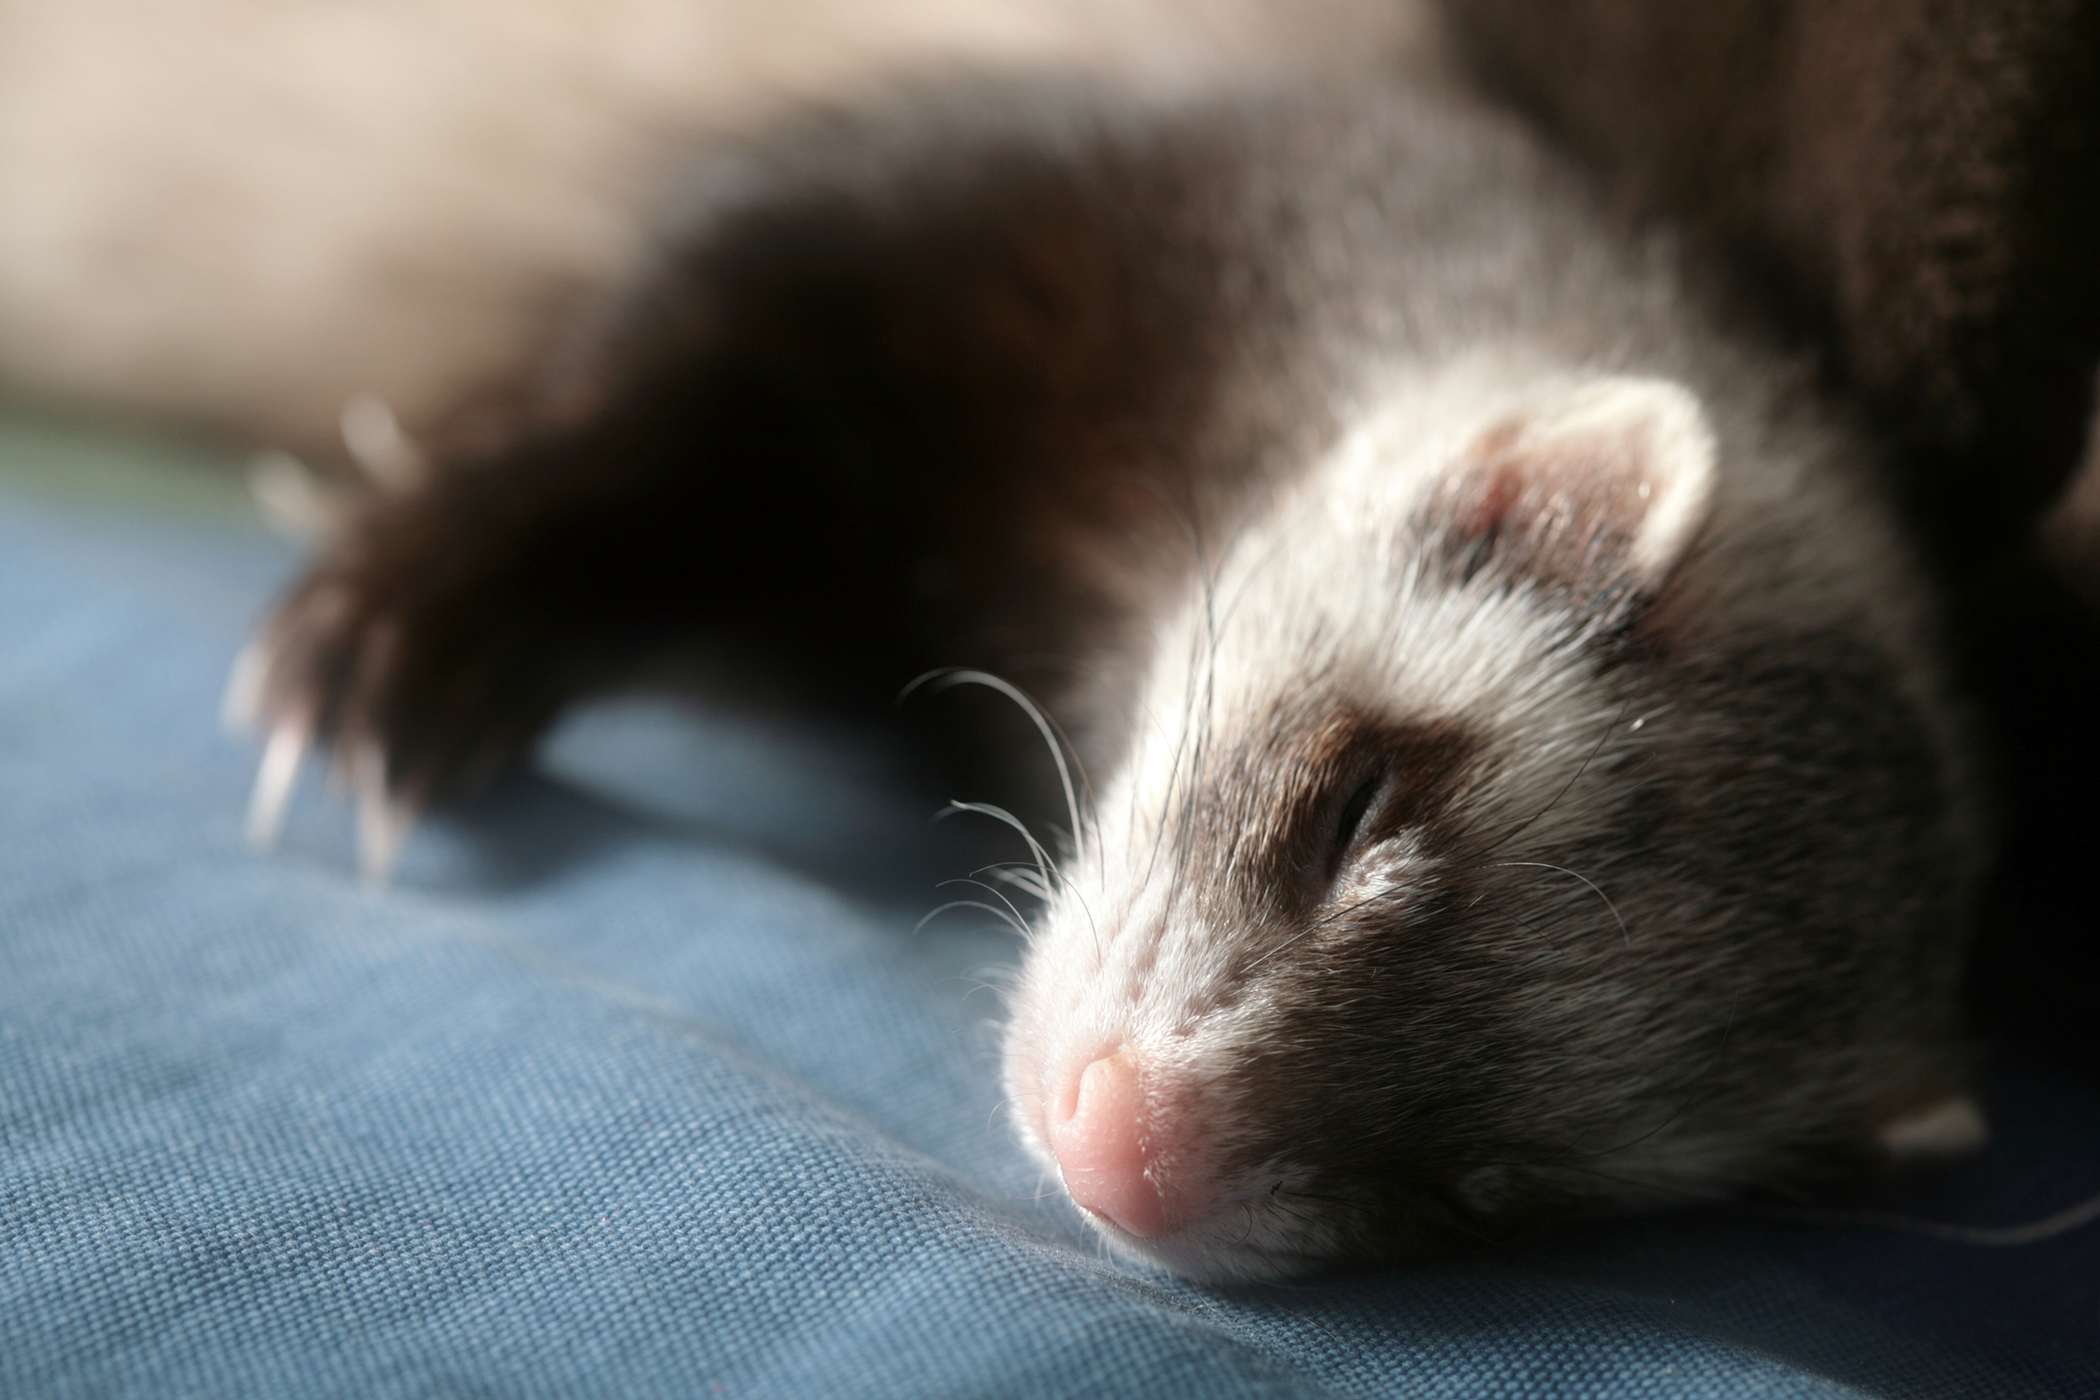 Tumors of the Skin, Hair, Nails, Sweat Glands in Ferrets